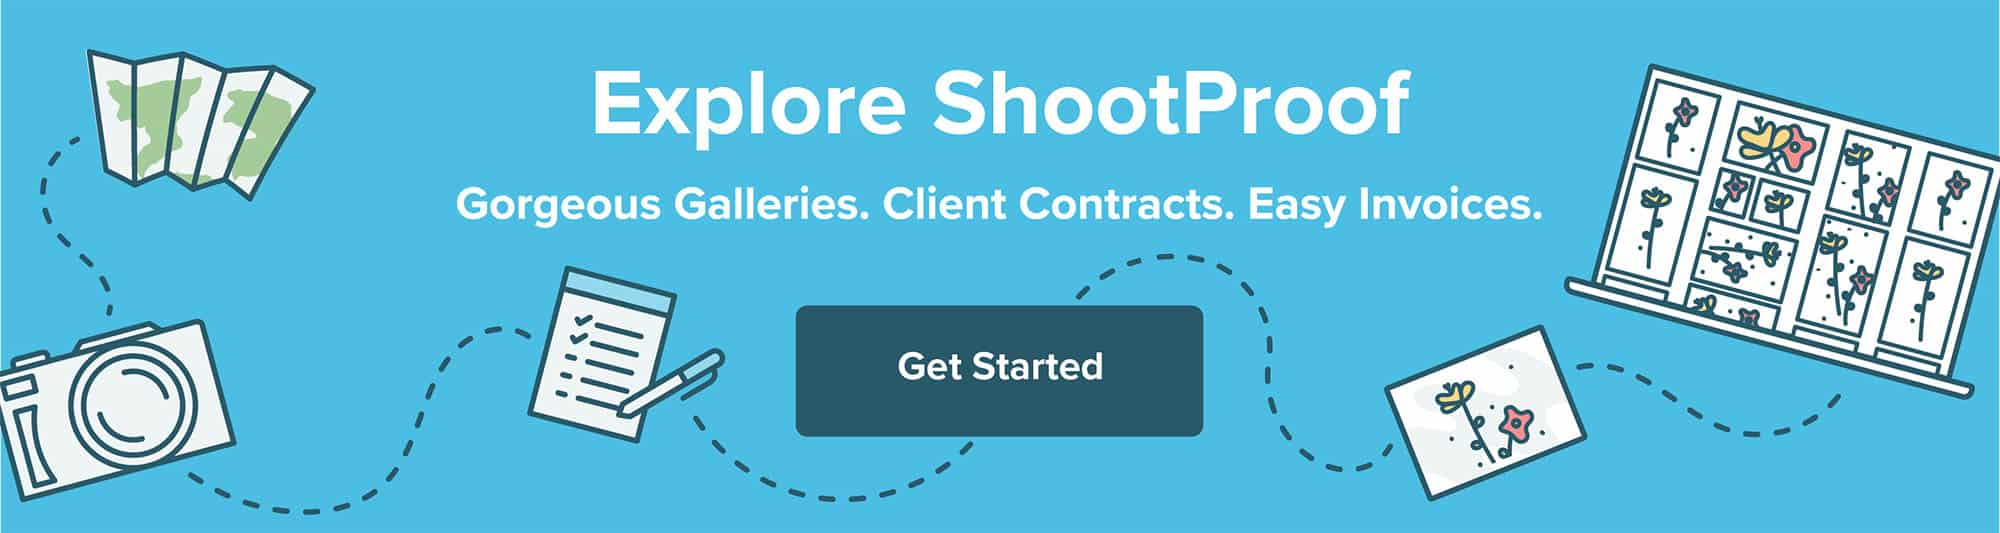 Show, share, and sell your photos with ShootProof! 💙 Powerful galleries, contracts, & invoices for pros.